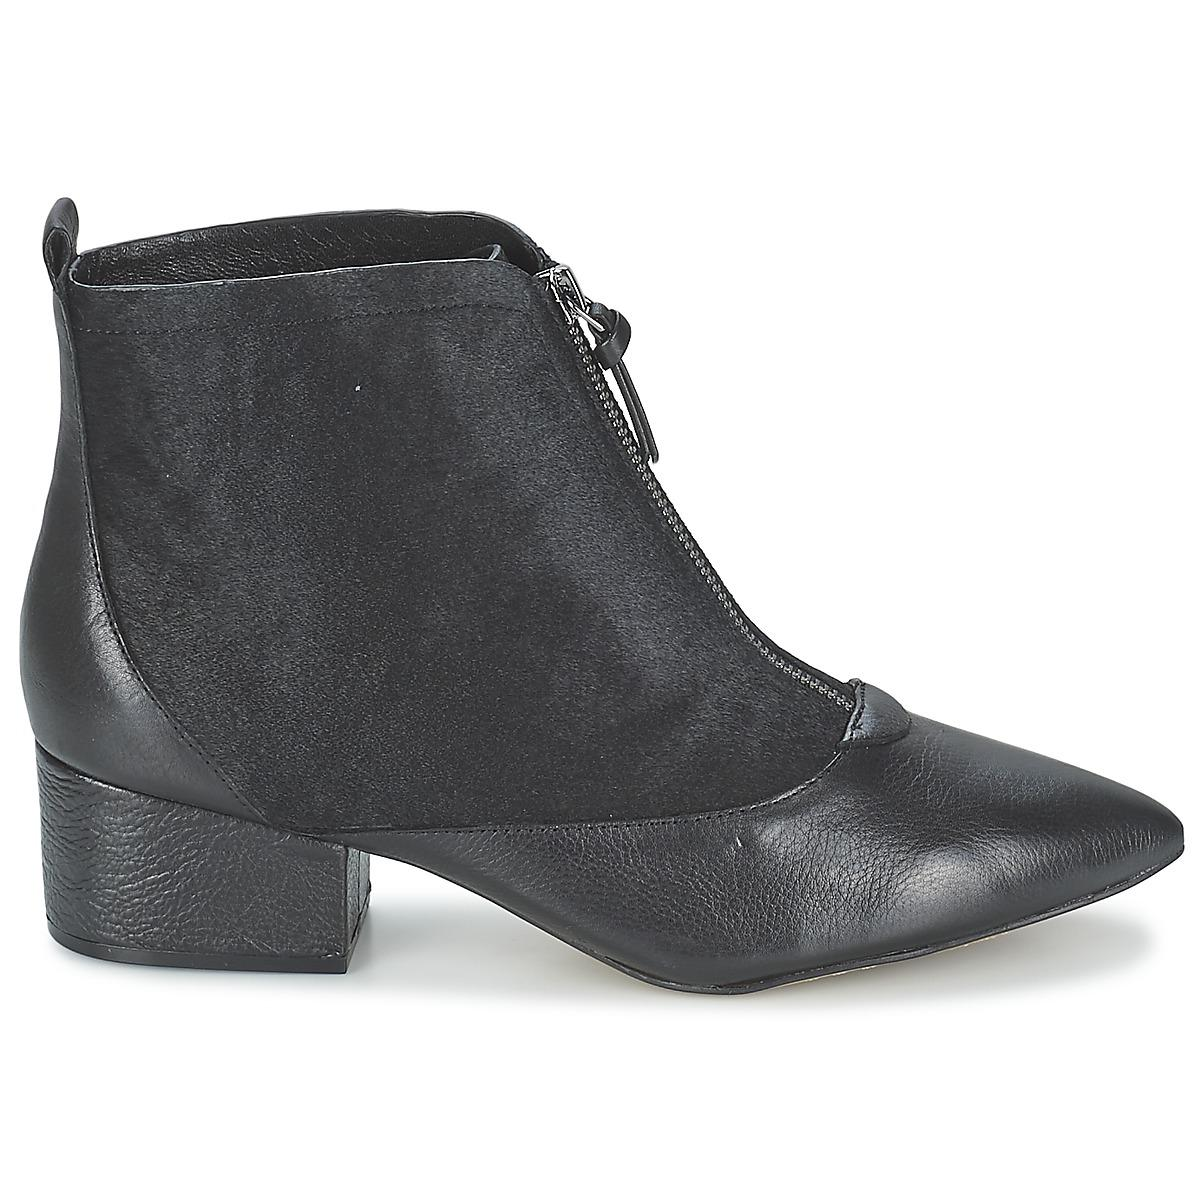 35ee0c52f8dd French Connection Robrey Women s Low Ankle Boots In Black in Black ...